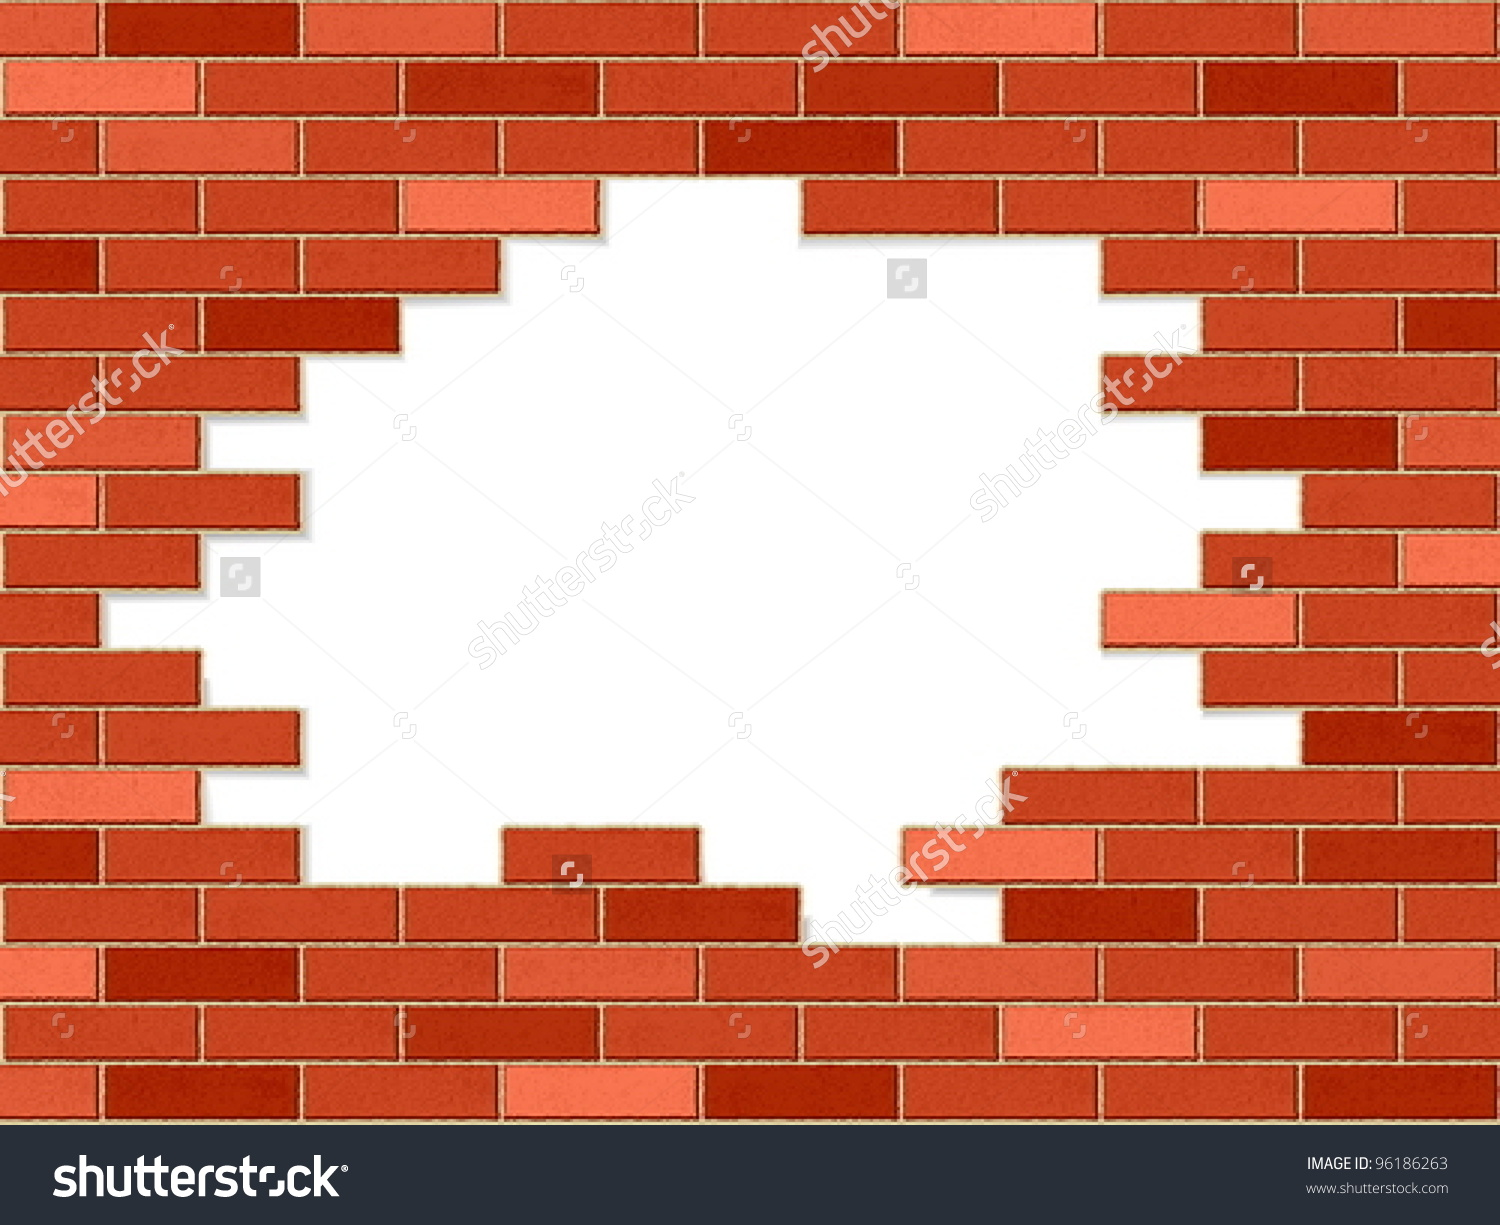 Crashed Brick Wall Texture Background Vector Stock Vector 96186263.